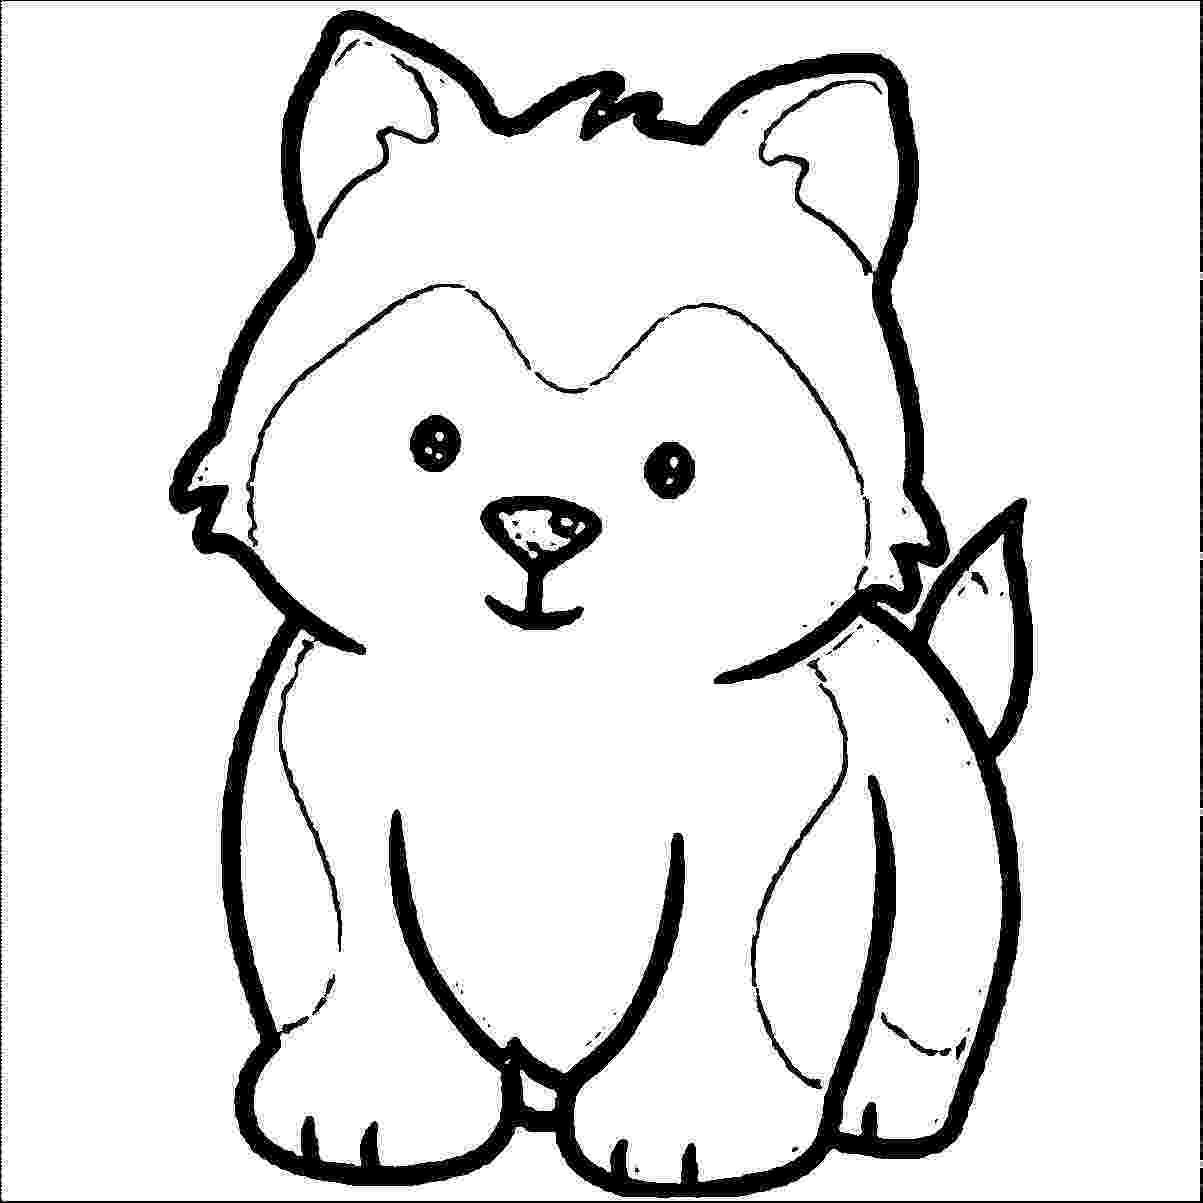 dog images to color husky puppy coloring pages printable coloring for kids 2019 dog color images to